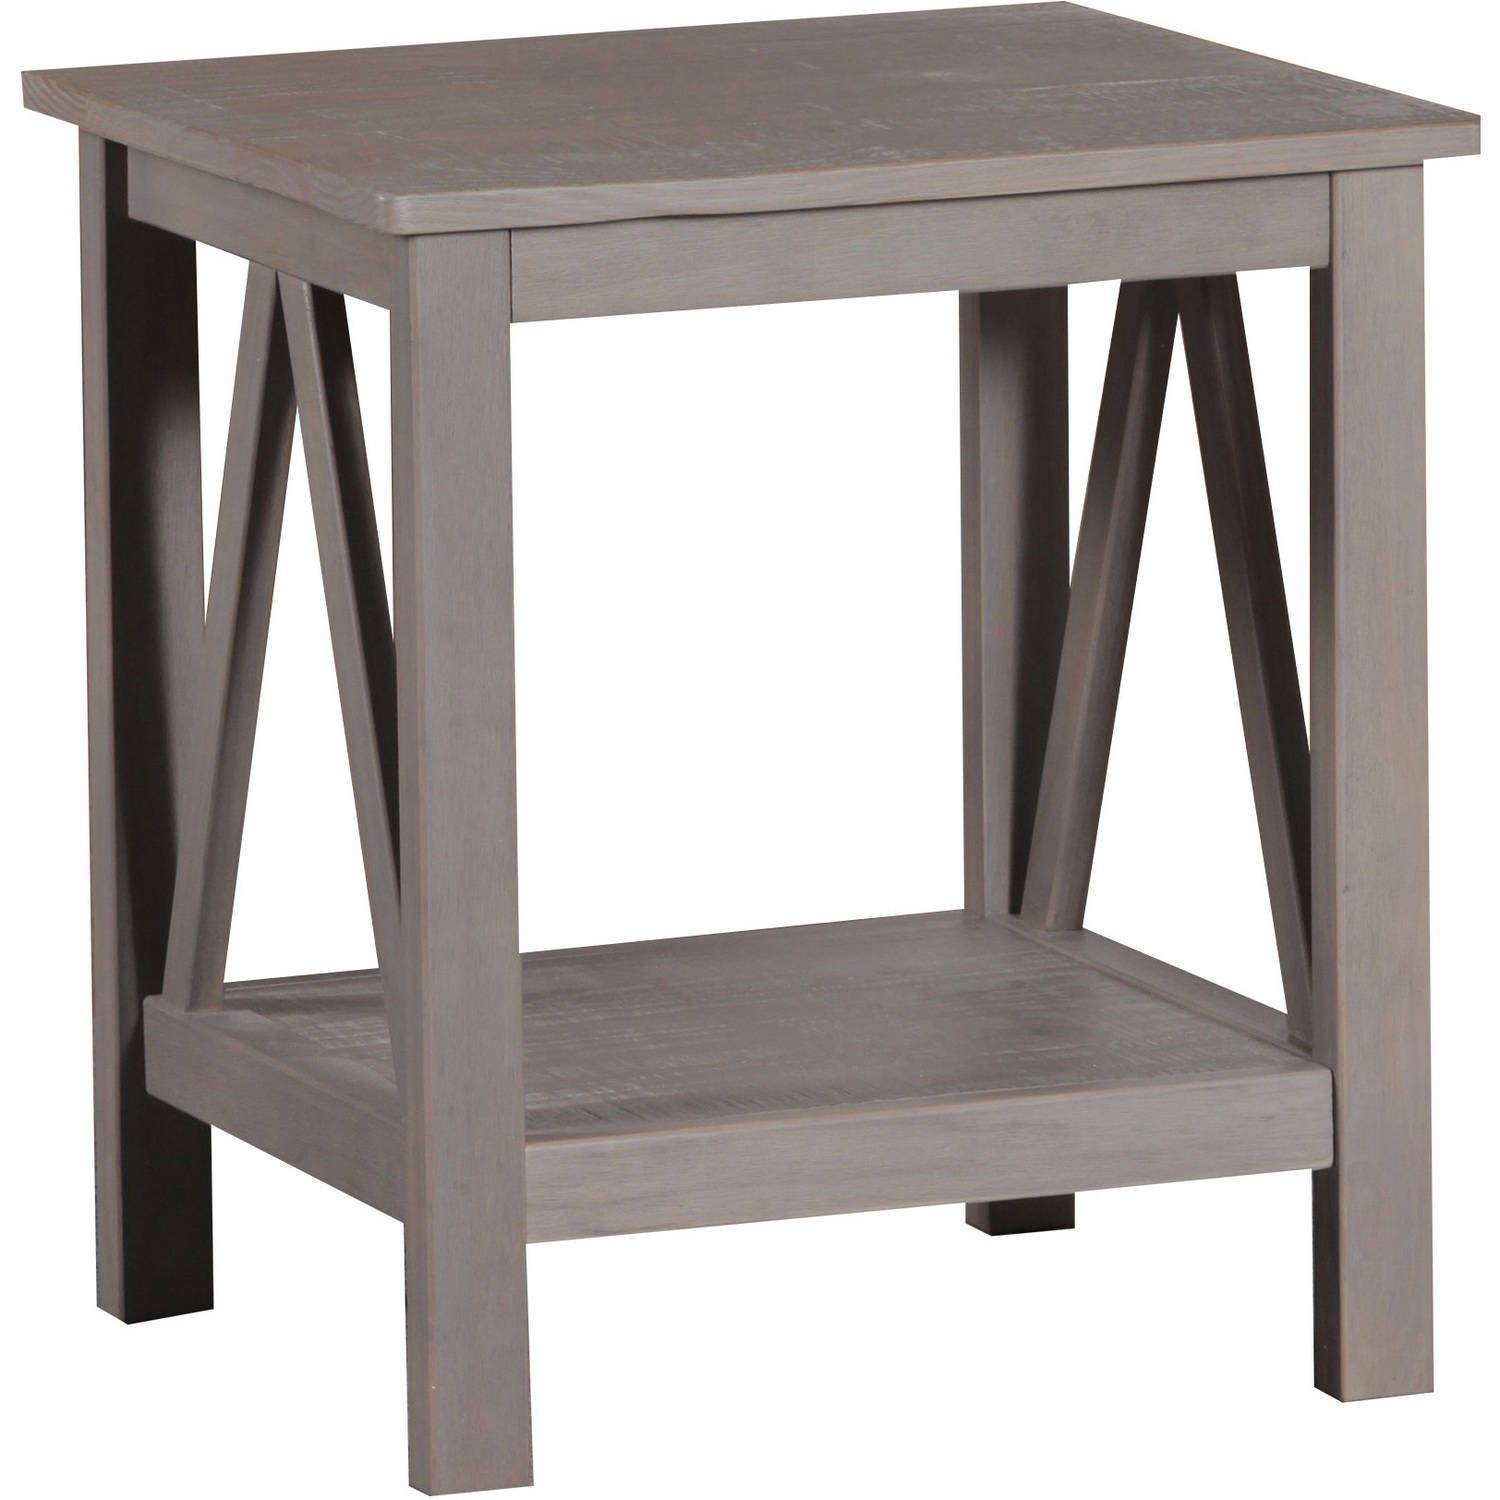 Linon Titian End Table with Bottom Shelf 22 inches Tall Rustic